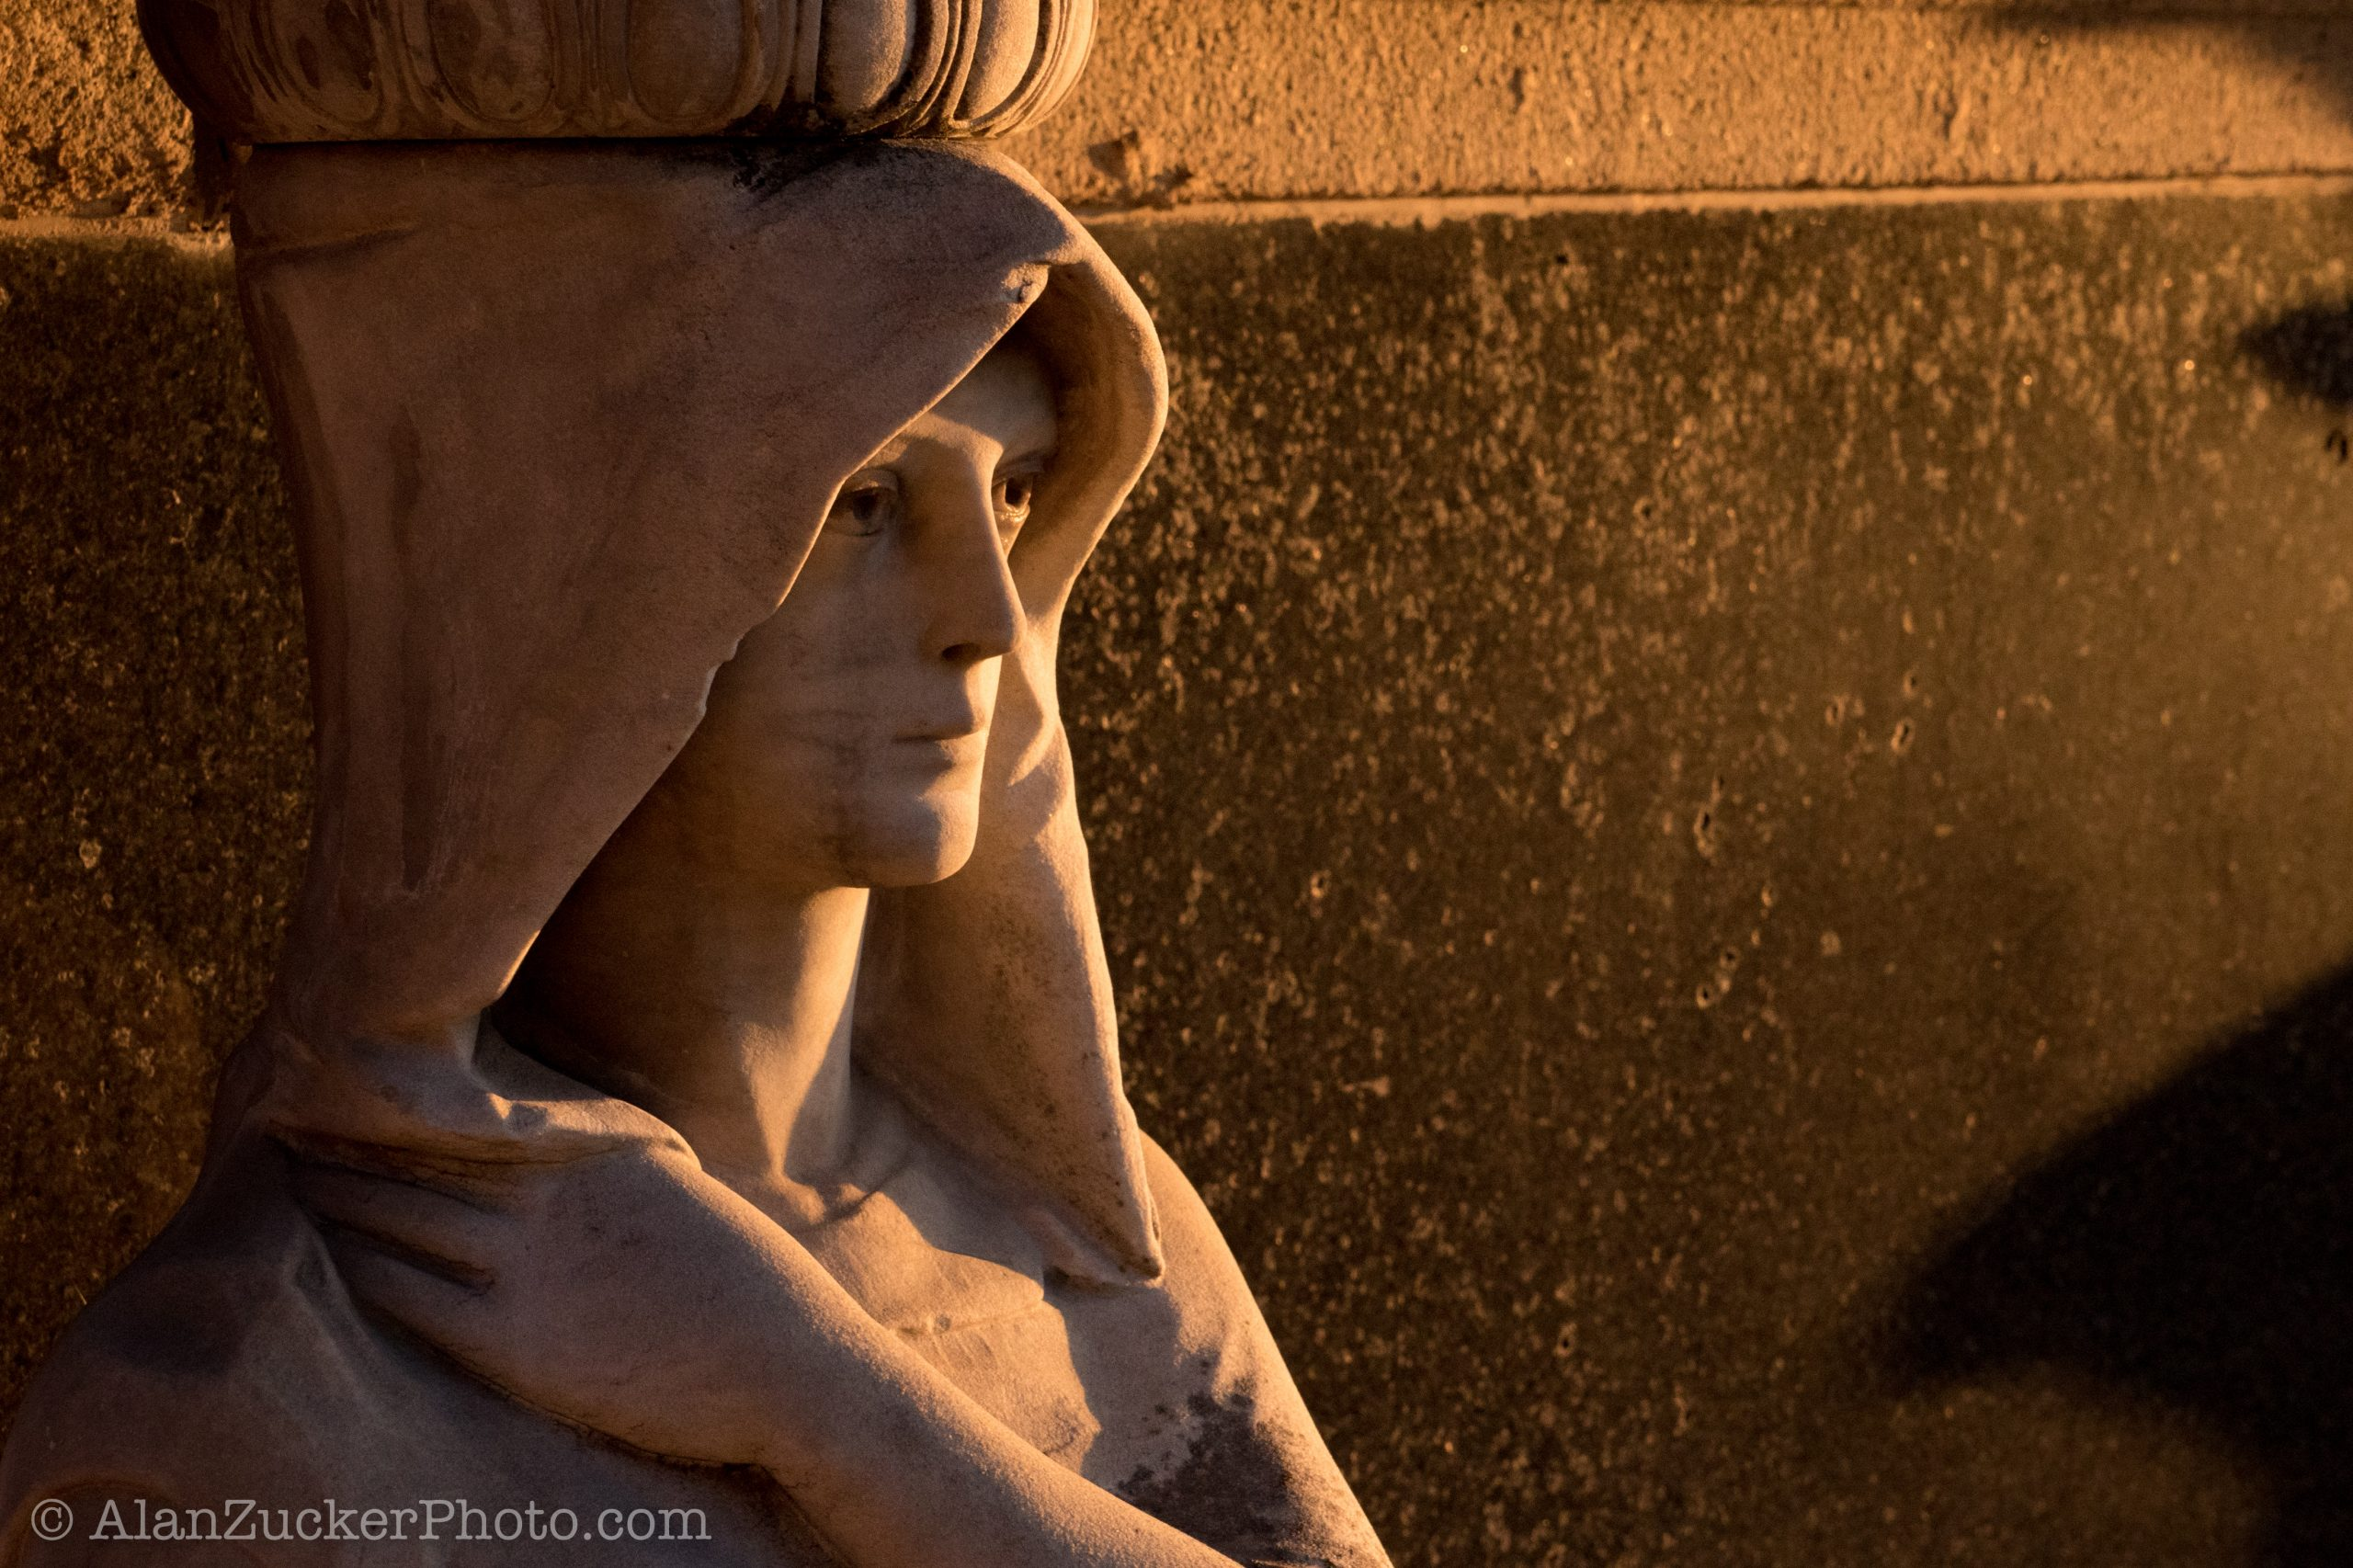 sunset, statue, tear-stained eye